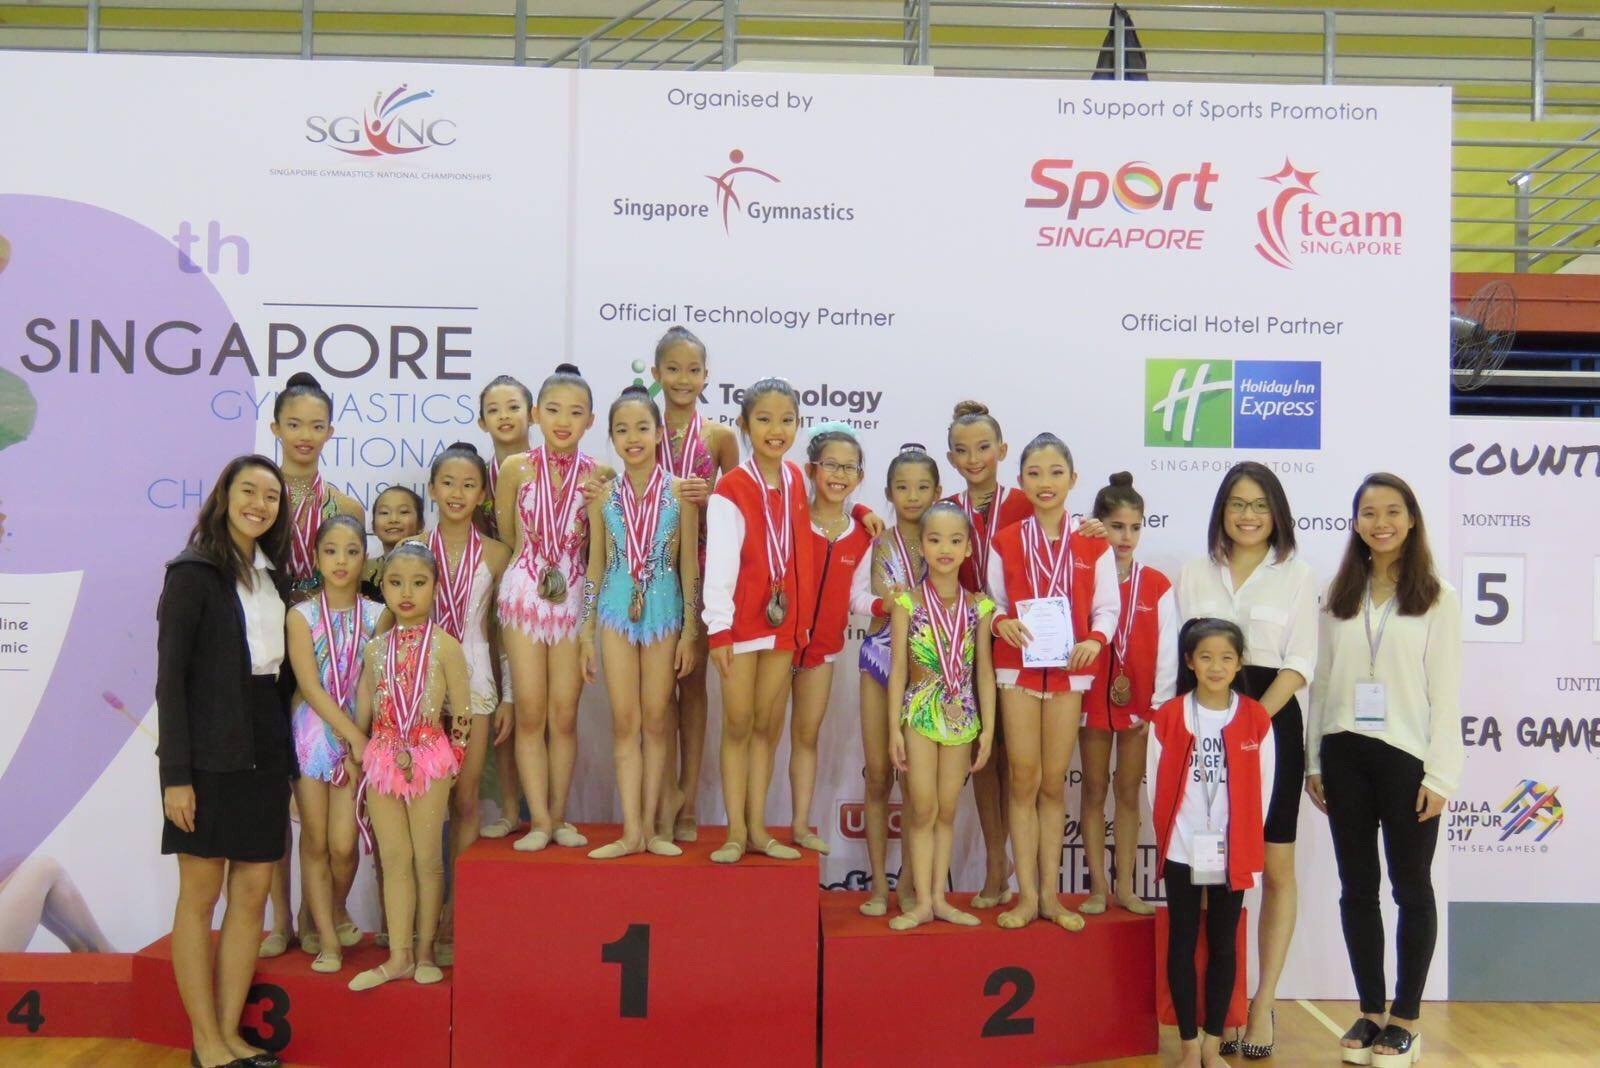 9th Singapore Gymnastics National Championships 2017 4